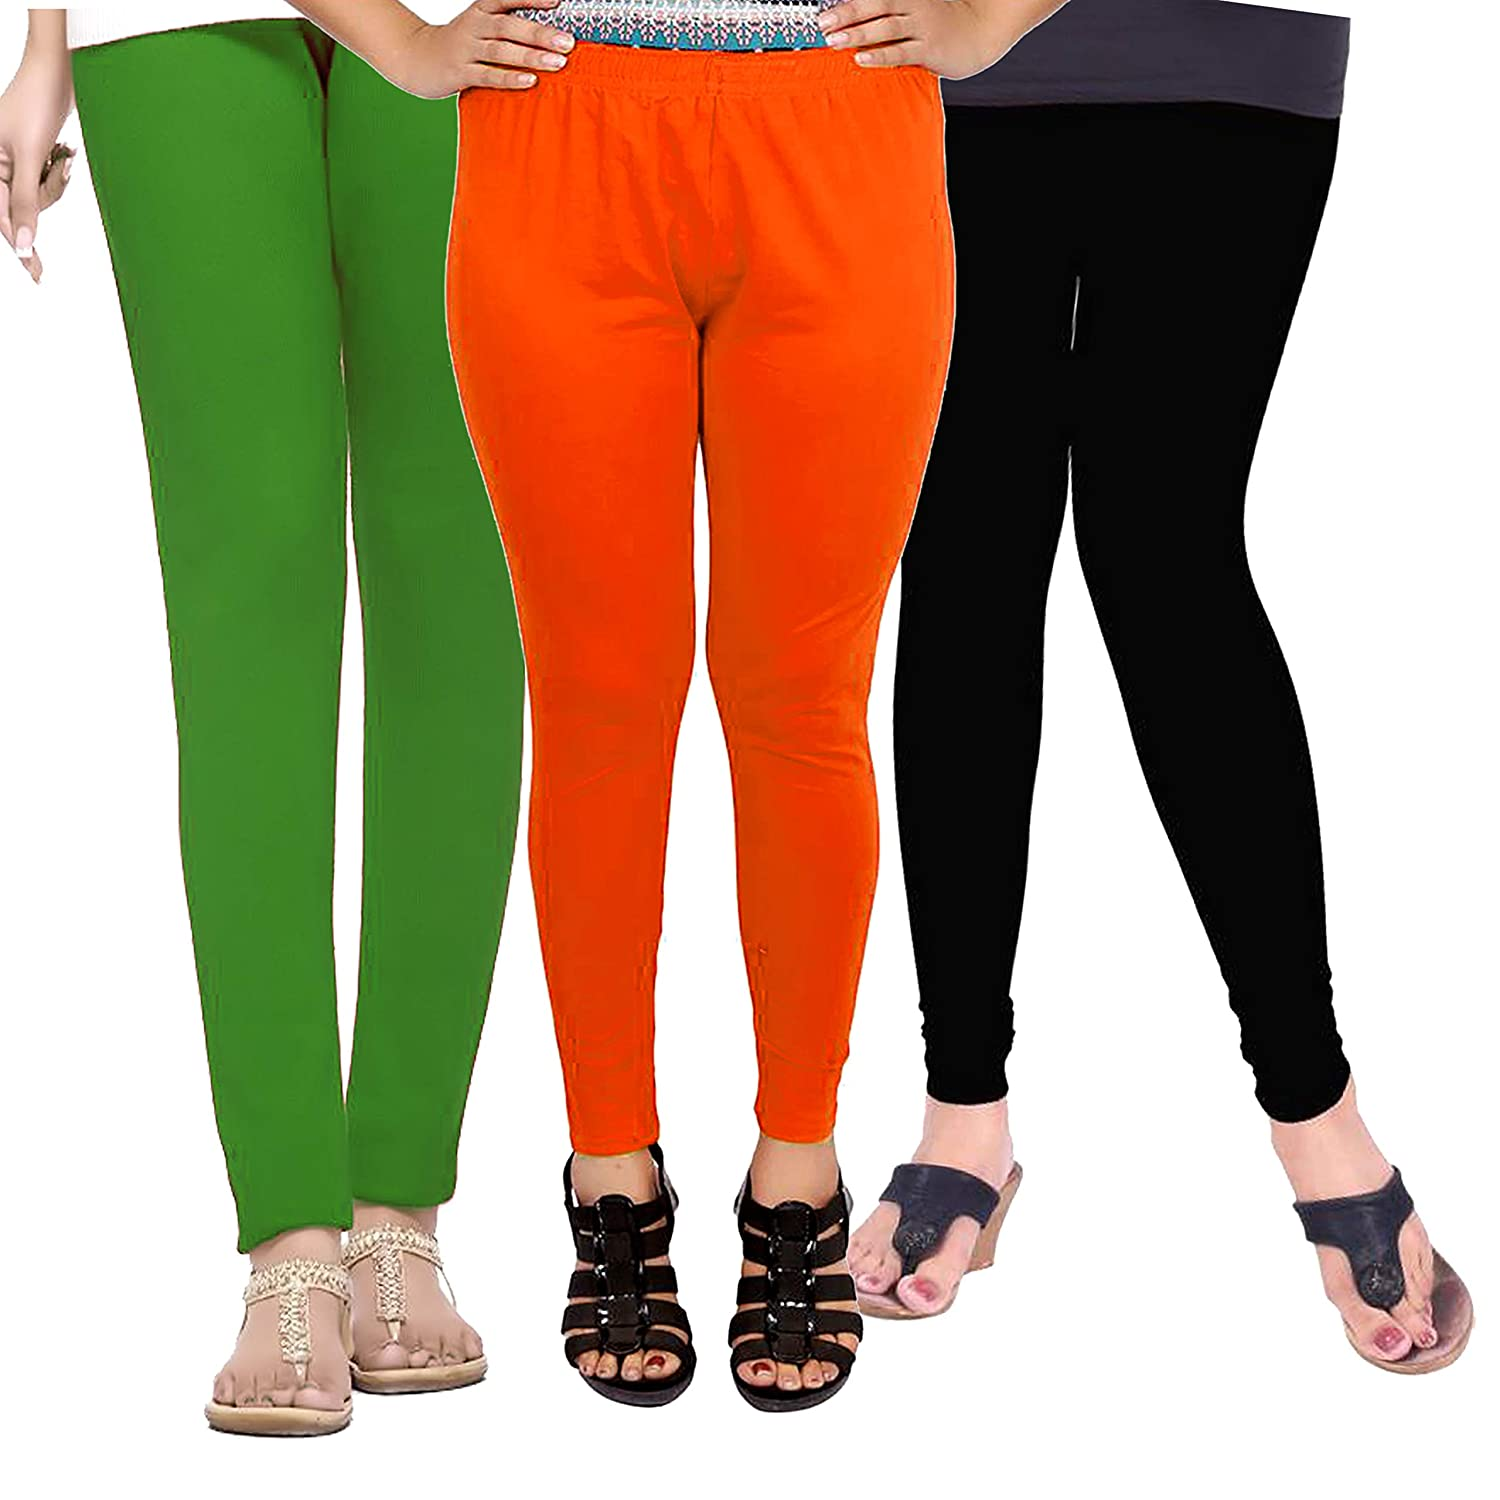 691295f041906 Leggings for Women Girls Cotton Smooth Fabric Pack of 3 (Wholesale Price in  Retail): Amazon.in: Clothing & Accessories